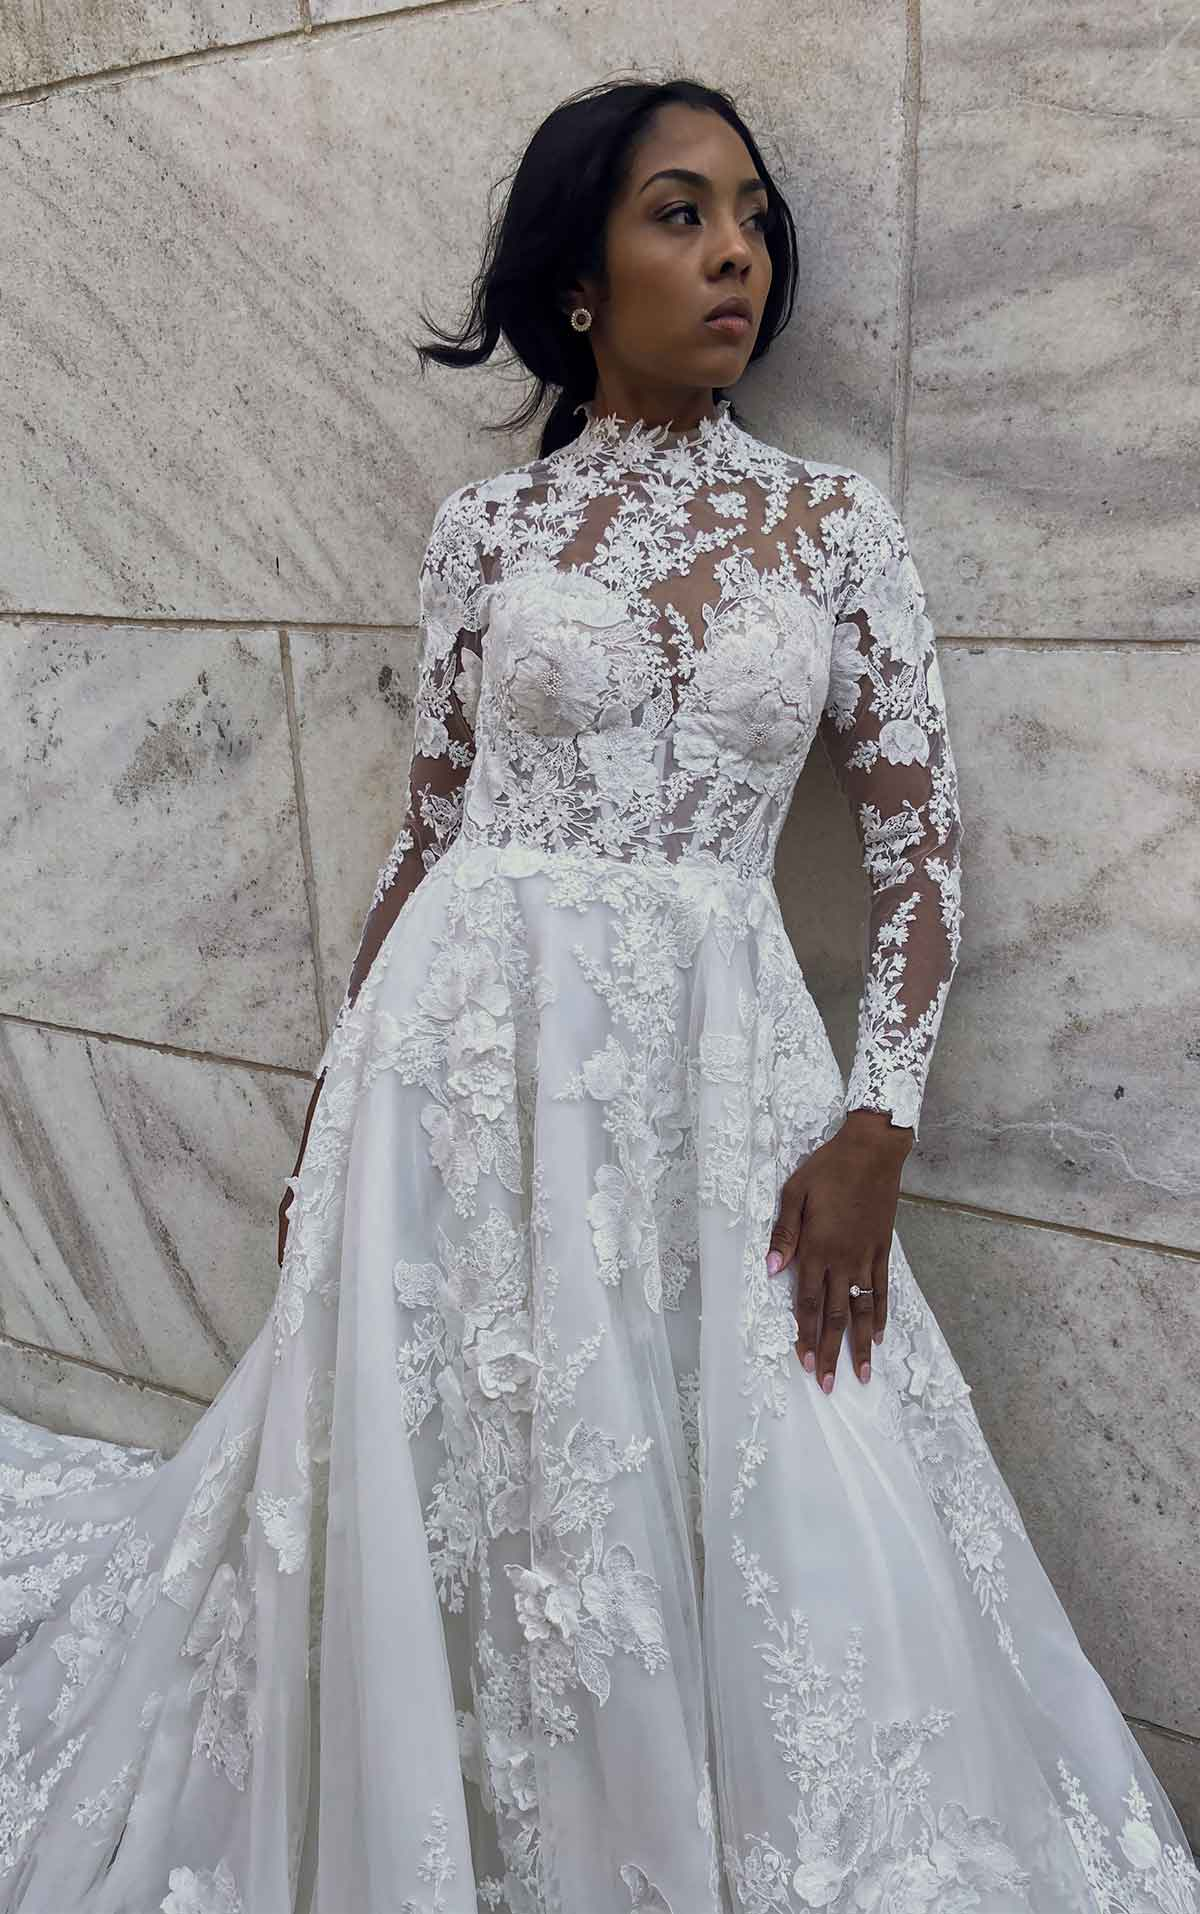 LE1128 High-Neck Ballgown with Cotton Lace and Long Sleeves by Martina Liana